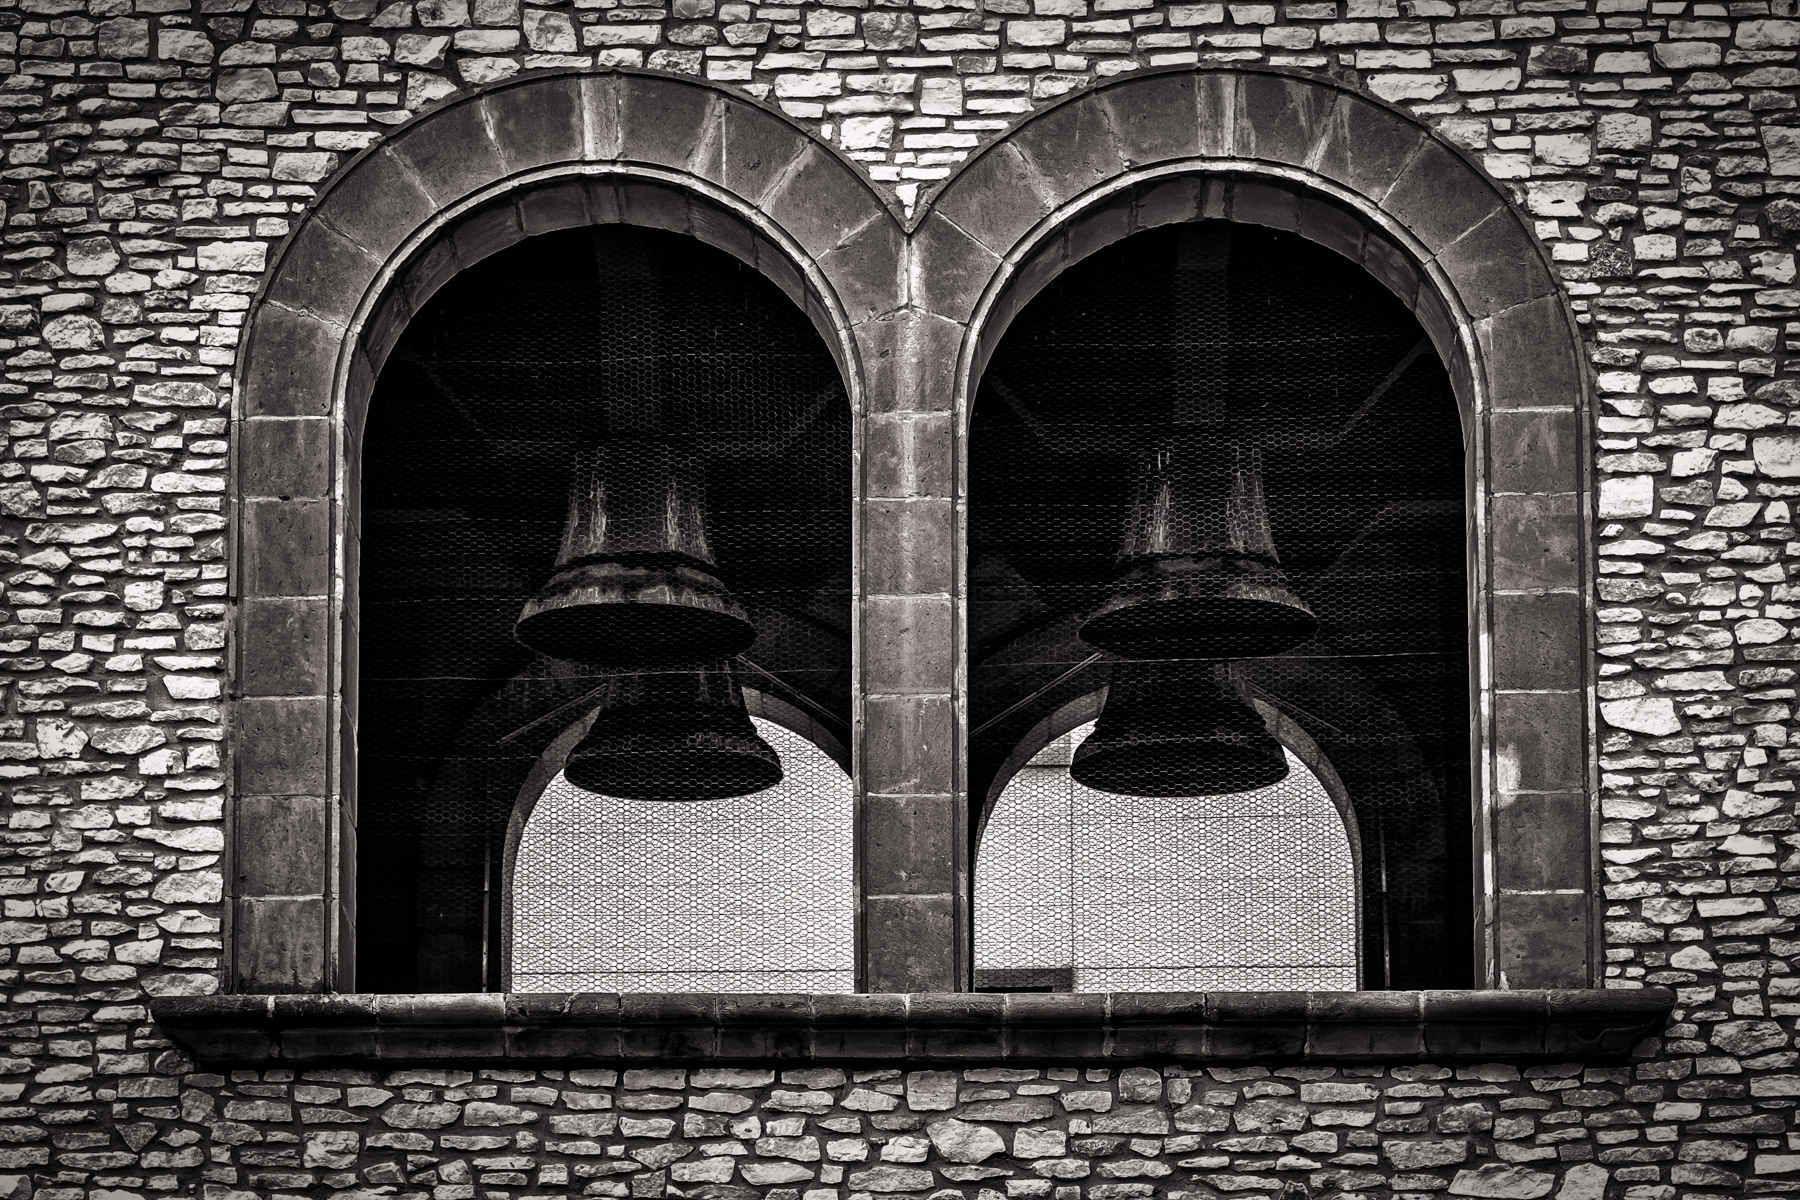 Bells in a bell tower along the Mandalay Canal, Las Colinas, Irving, Texas.